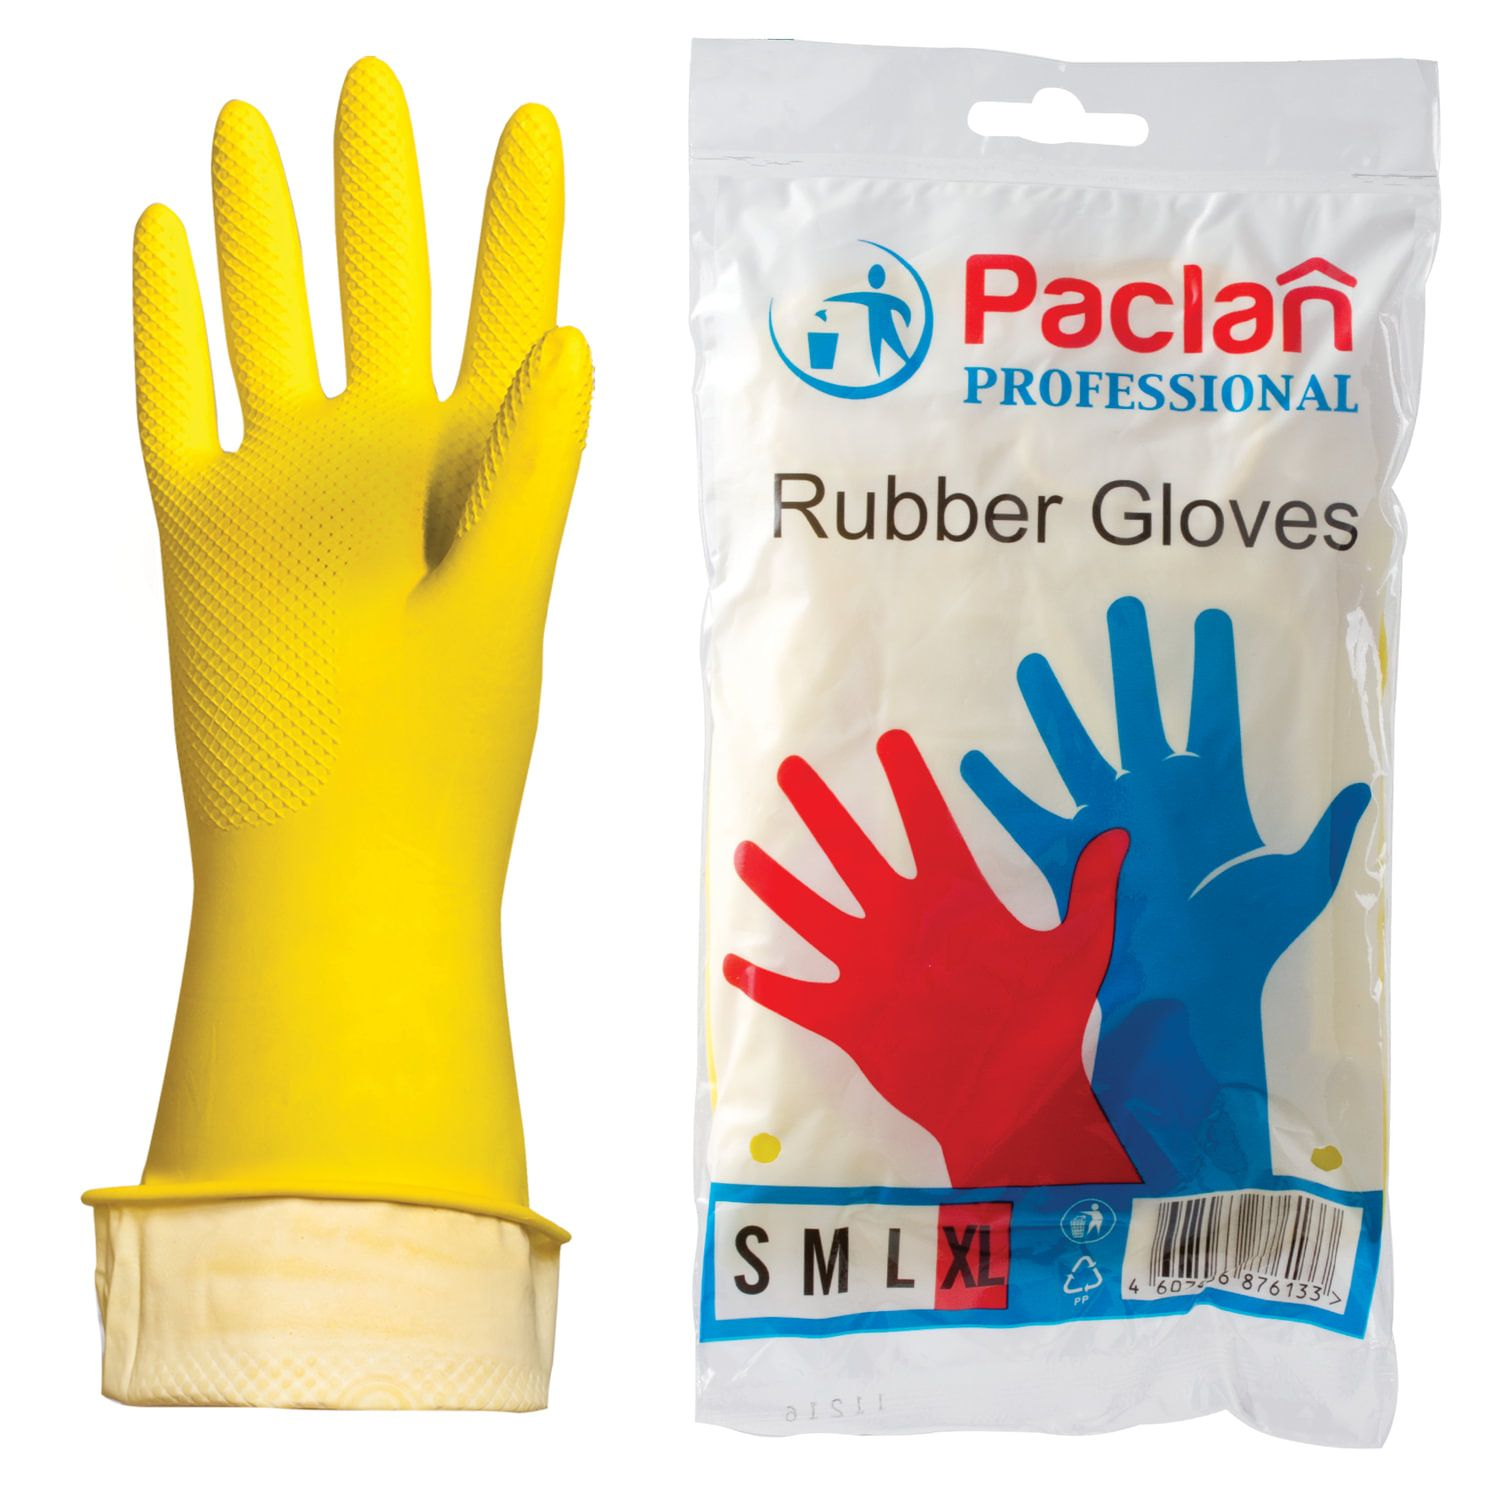 "PACLAN / Latex household gloves ""Professional"", cotton-coated, size XL (extra large), yellow"